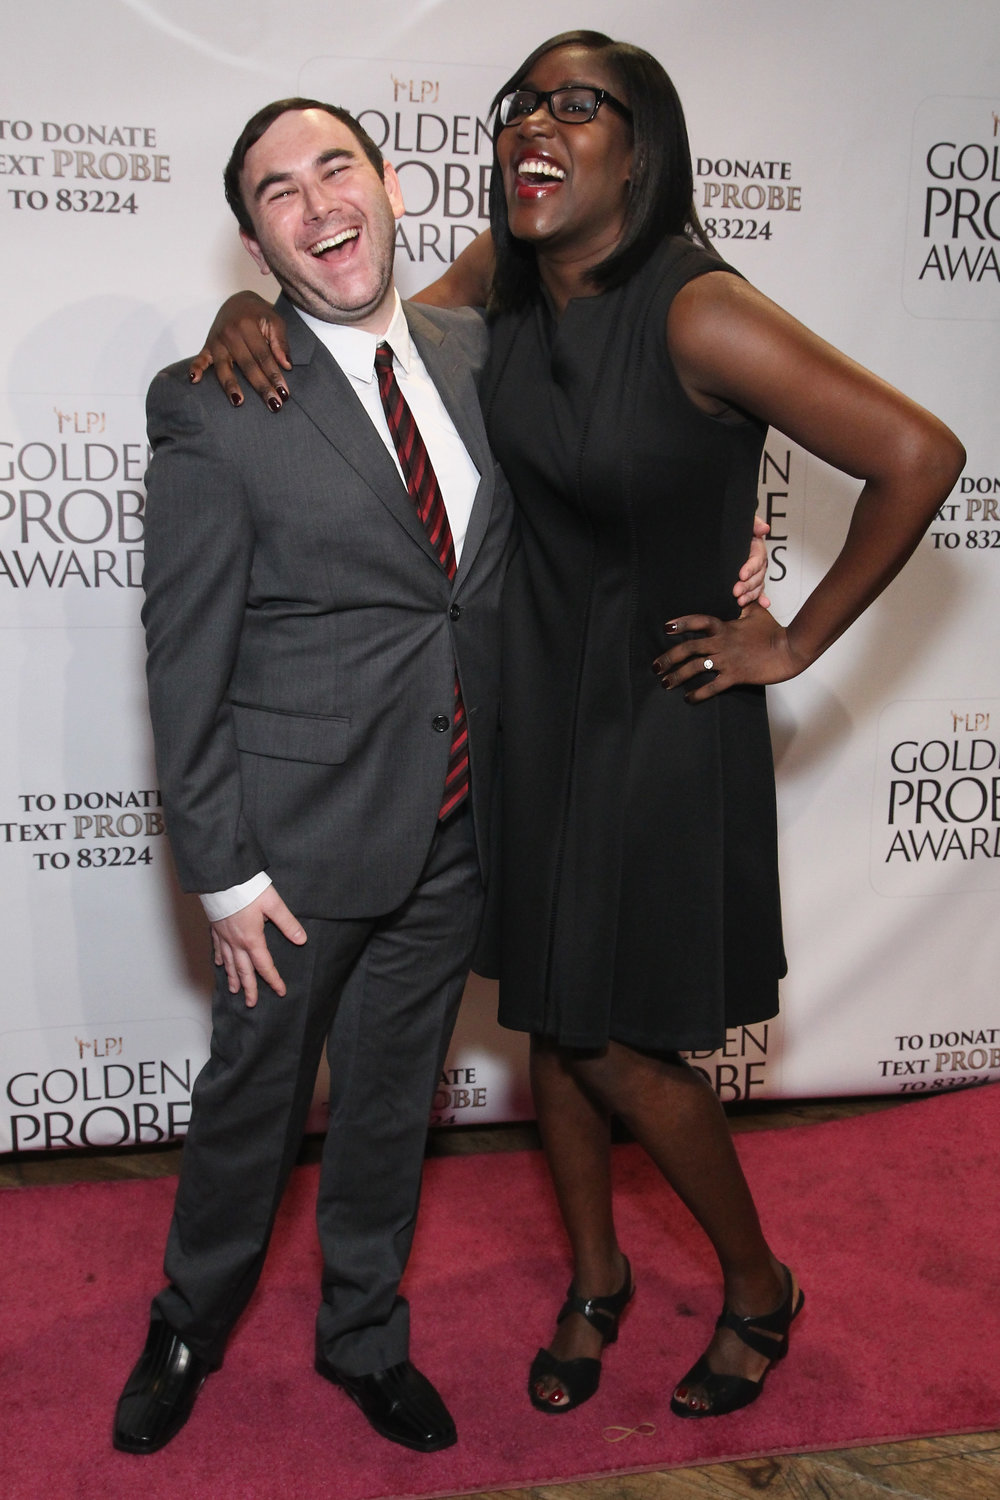 Andy Beckerman and Naomi Ekperigin (Photo by Astrid Stawiarz/Getty Images for Lady Parts Justice)